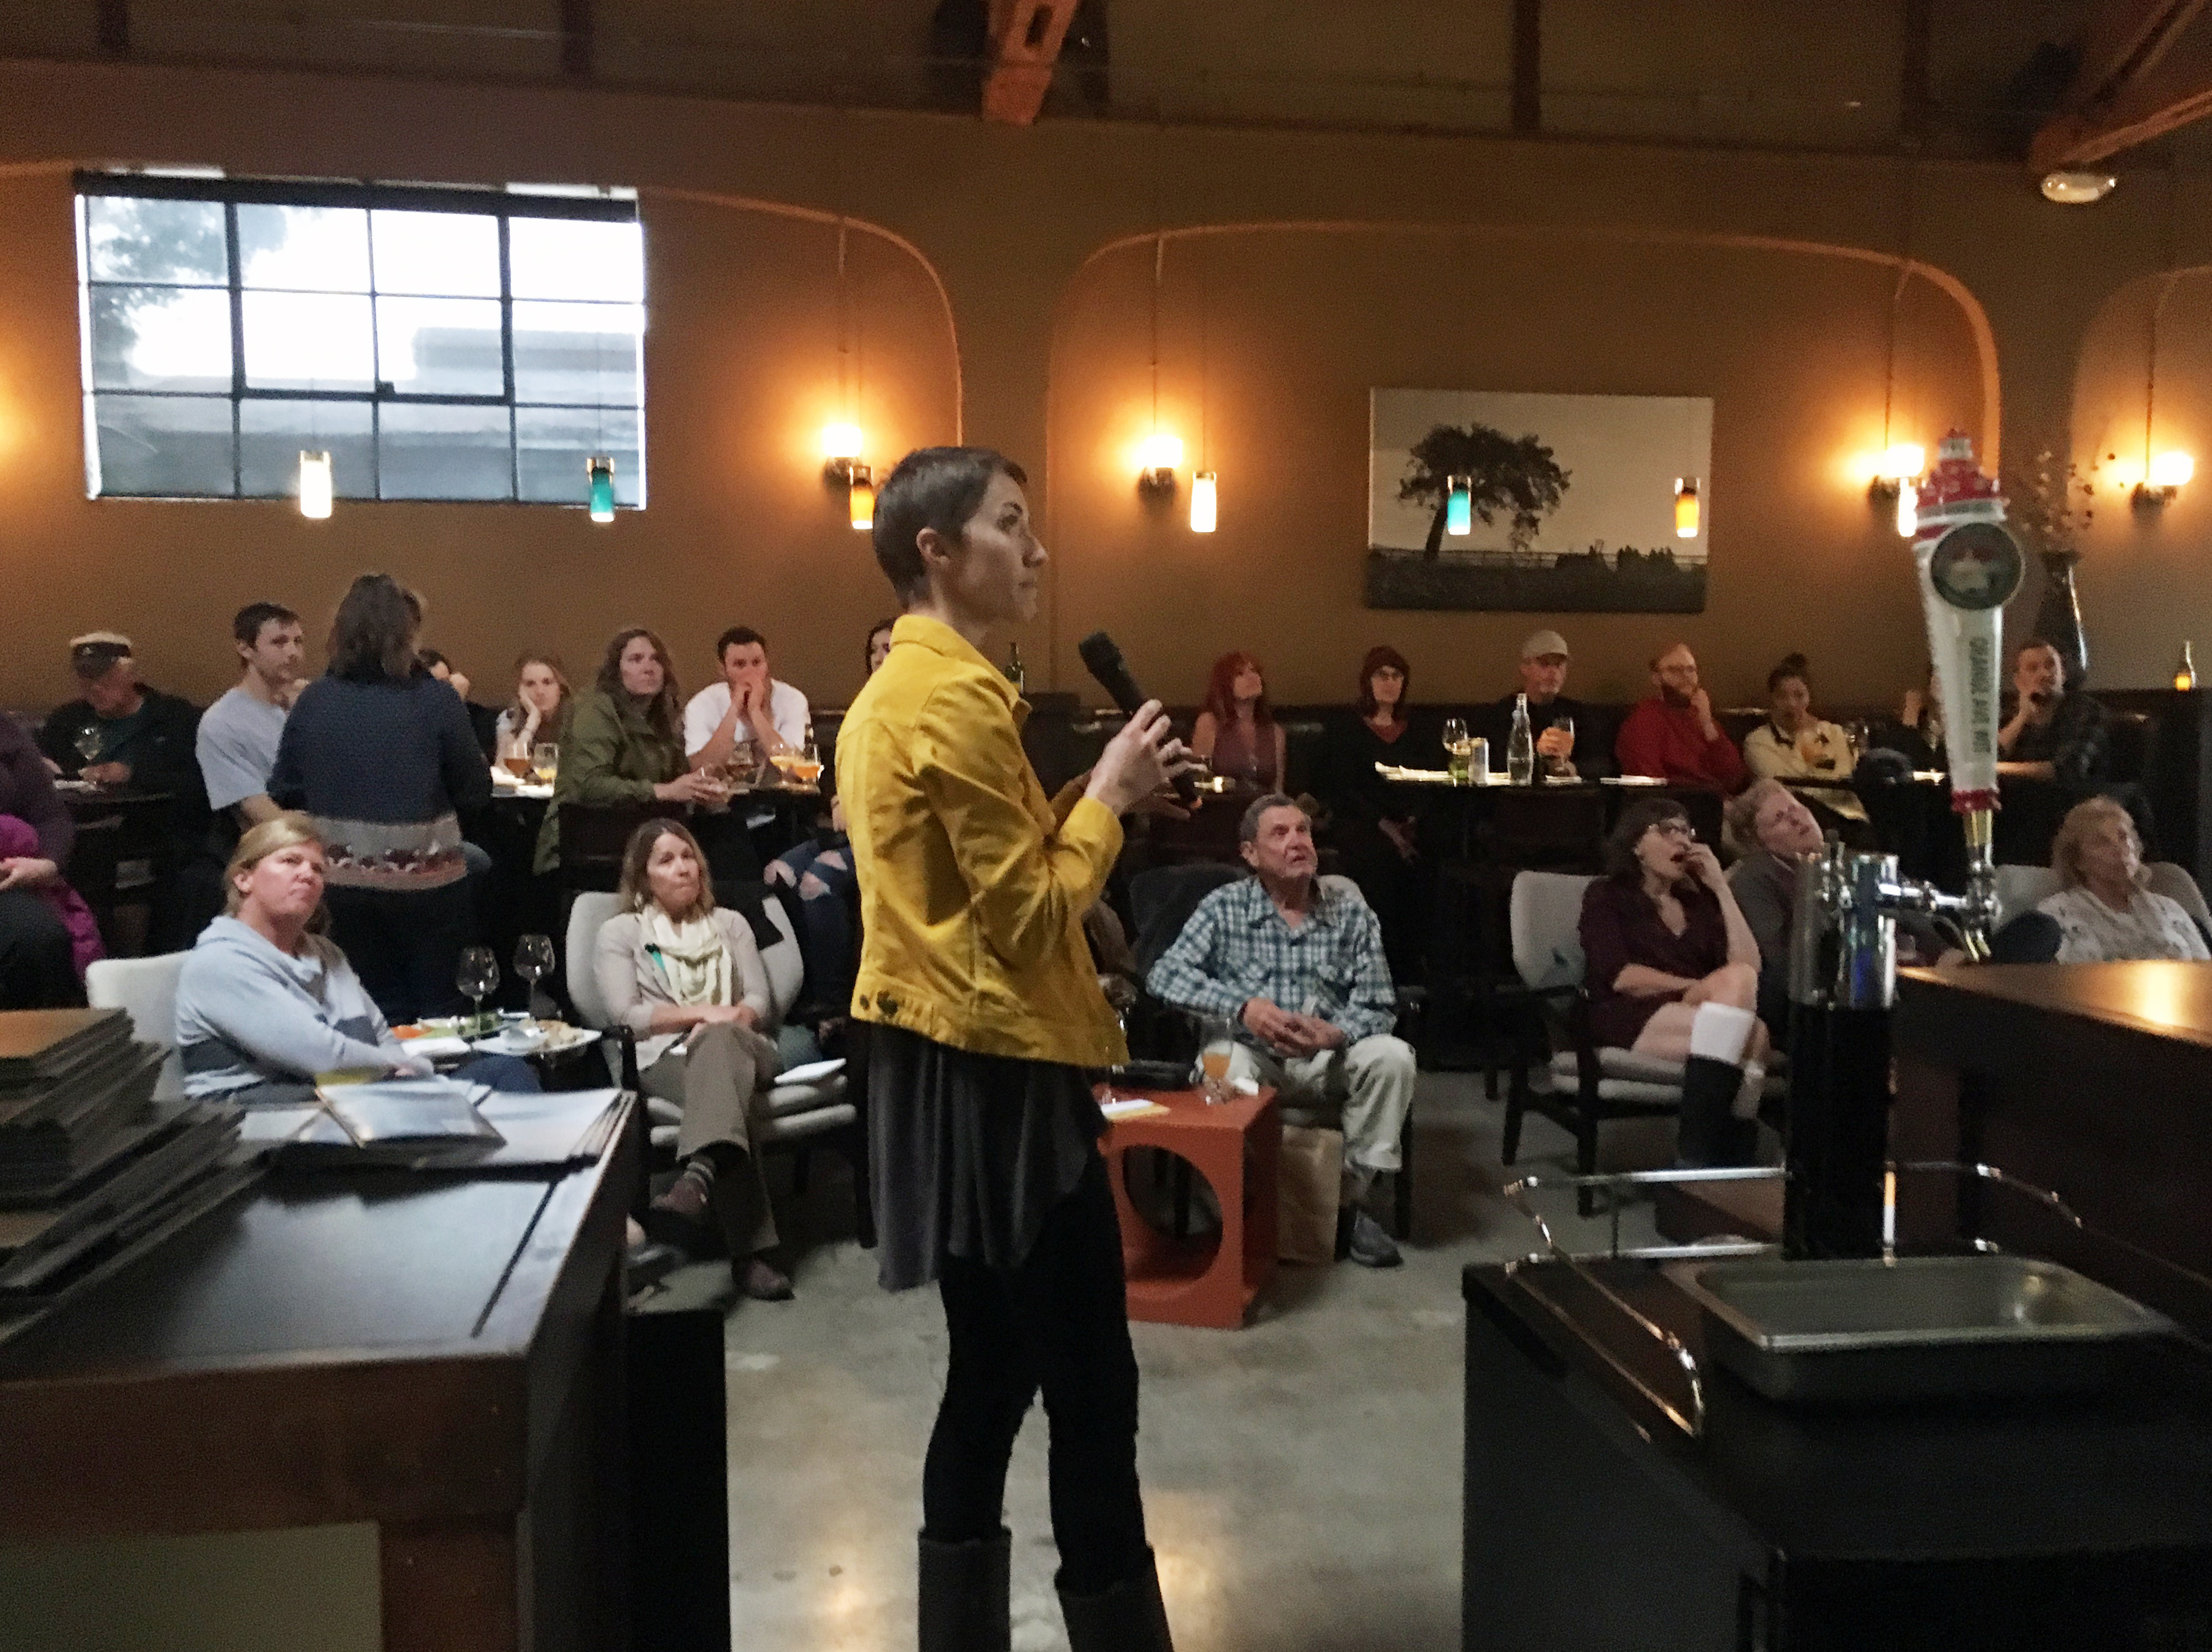 We gave a talk about our dynamic bay, focusing on eelgrass, sediment, and climate change, at Luis Wine Bar during Science After Dark.